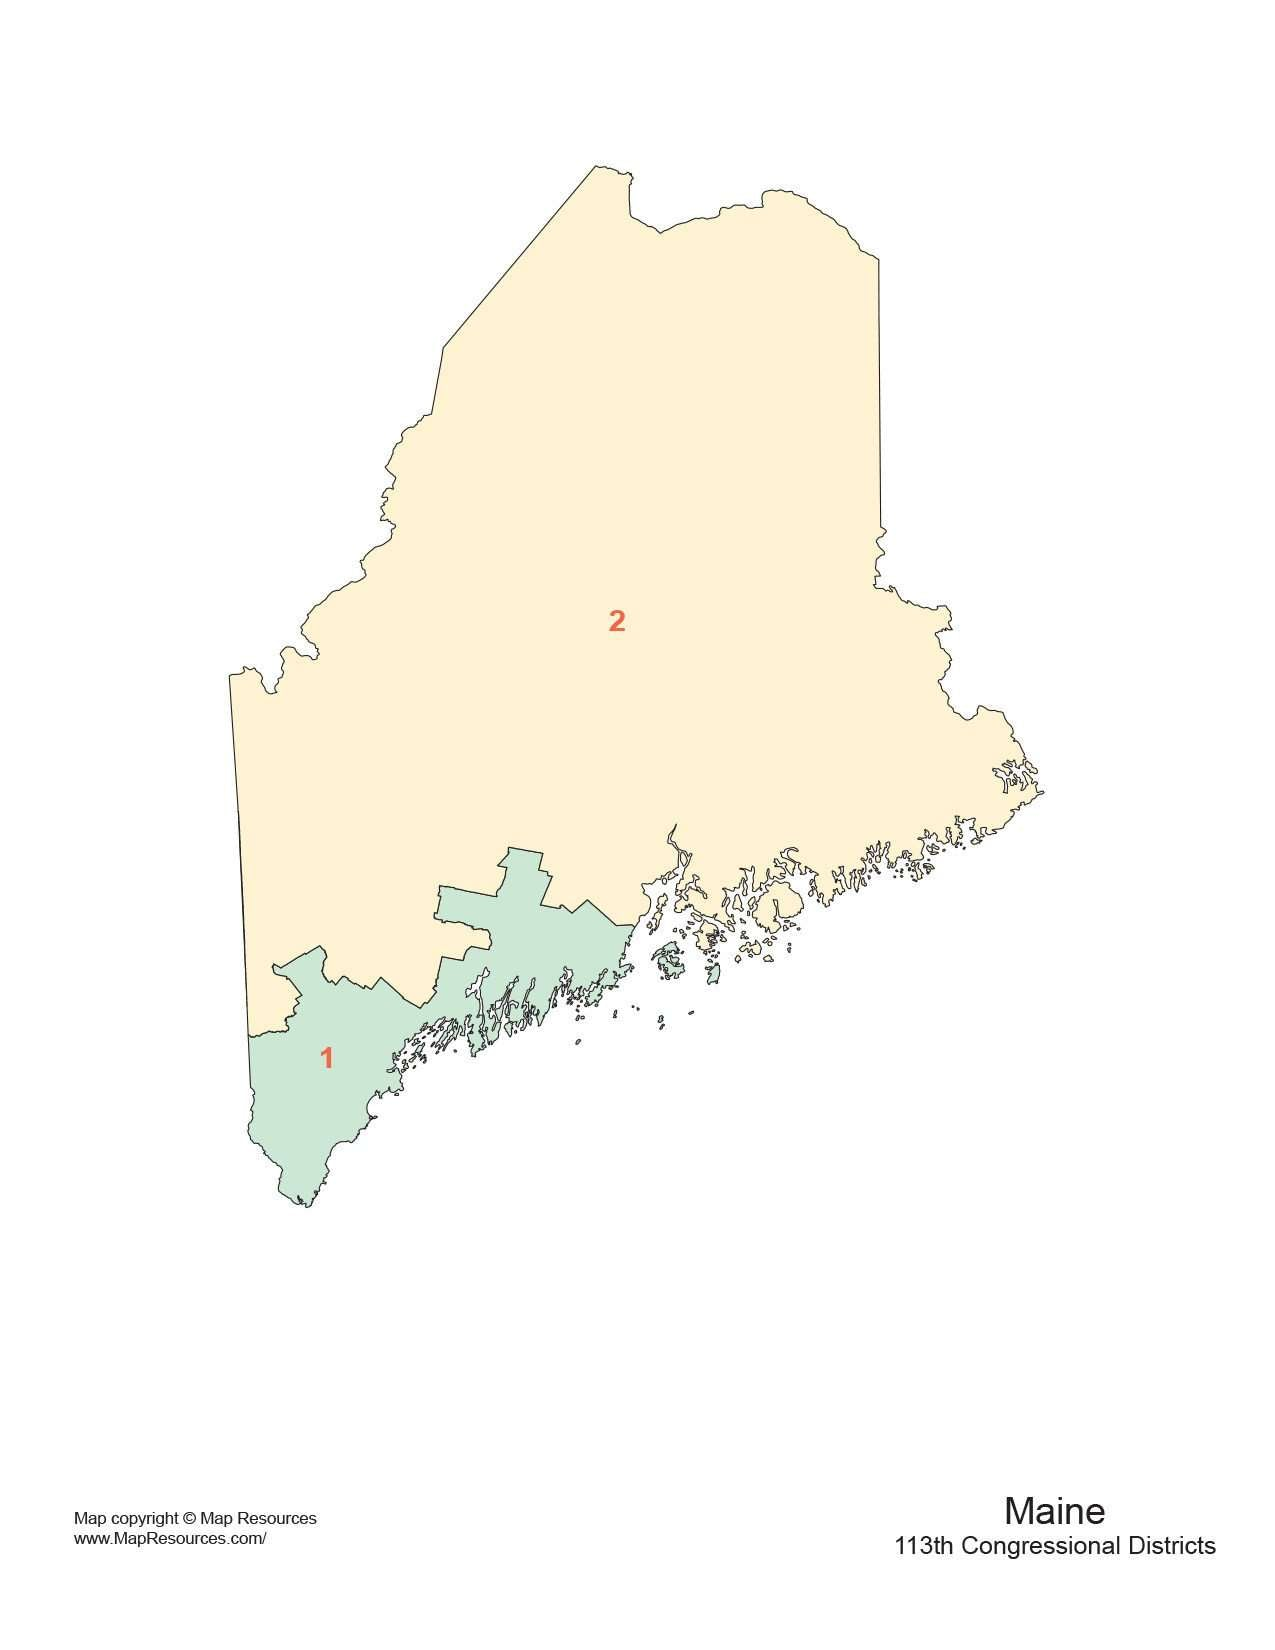 Maine Congressional District Map Adobe Illustrator And PowerPoint - Map of maine usa